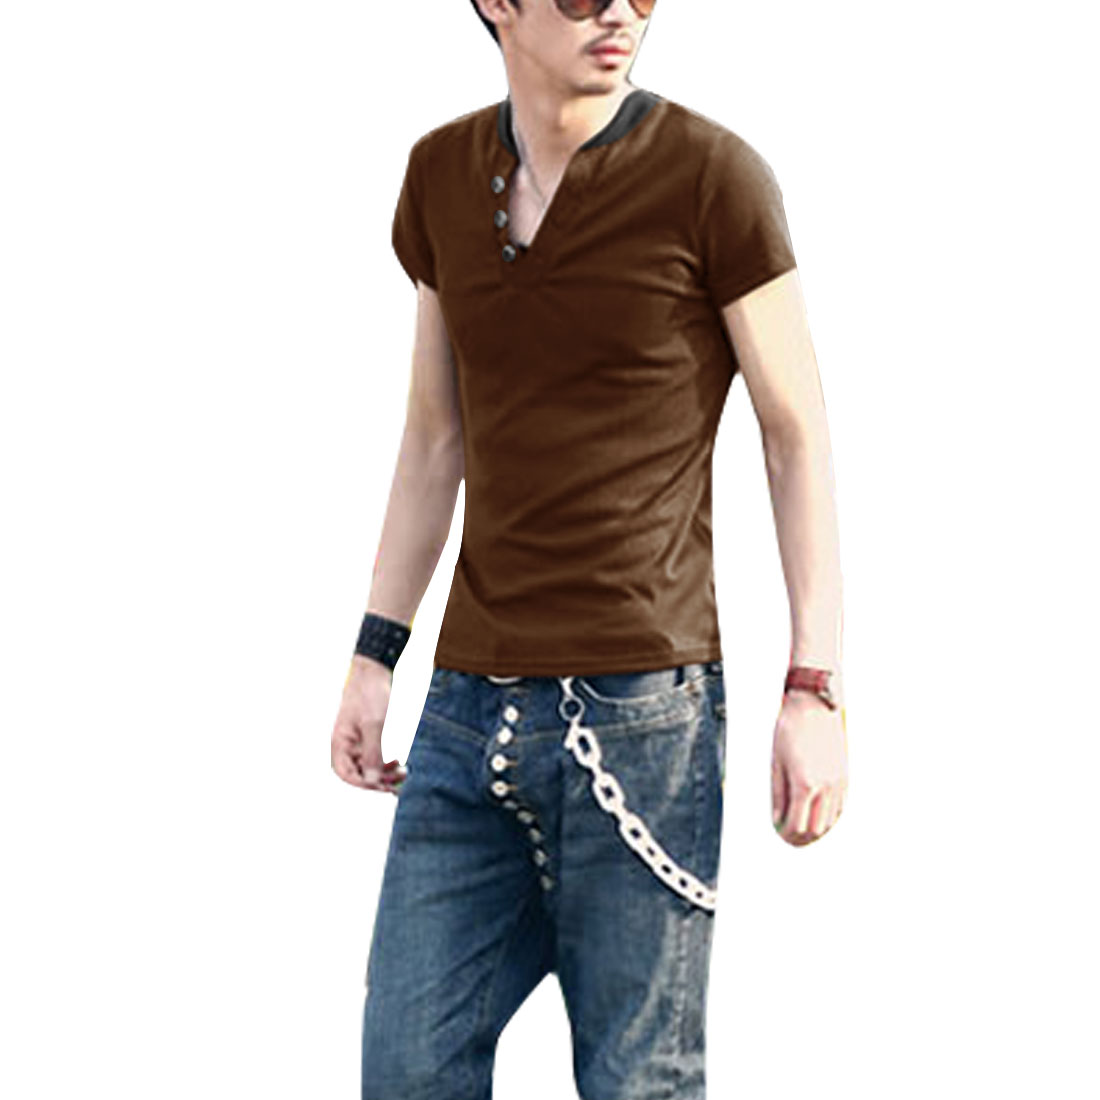 Man Short Sleeve V Neck Contrast Color Stylish Shirt Coffee M